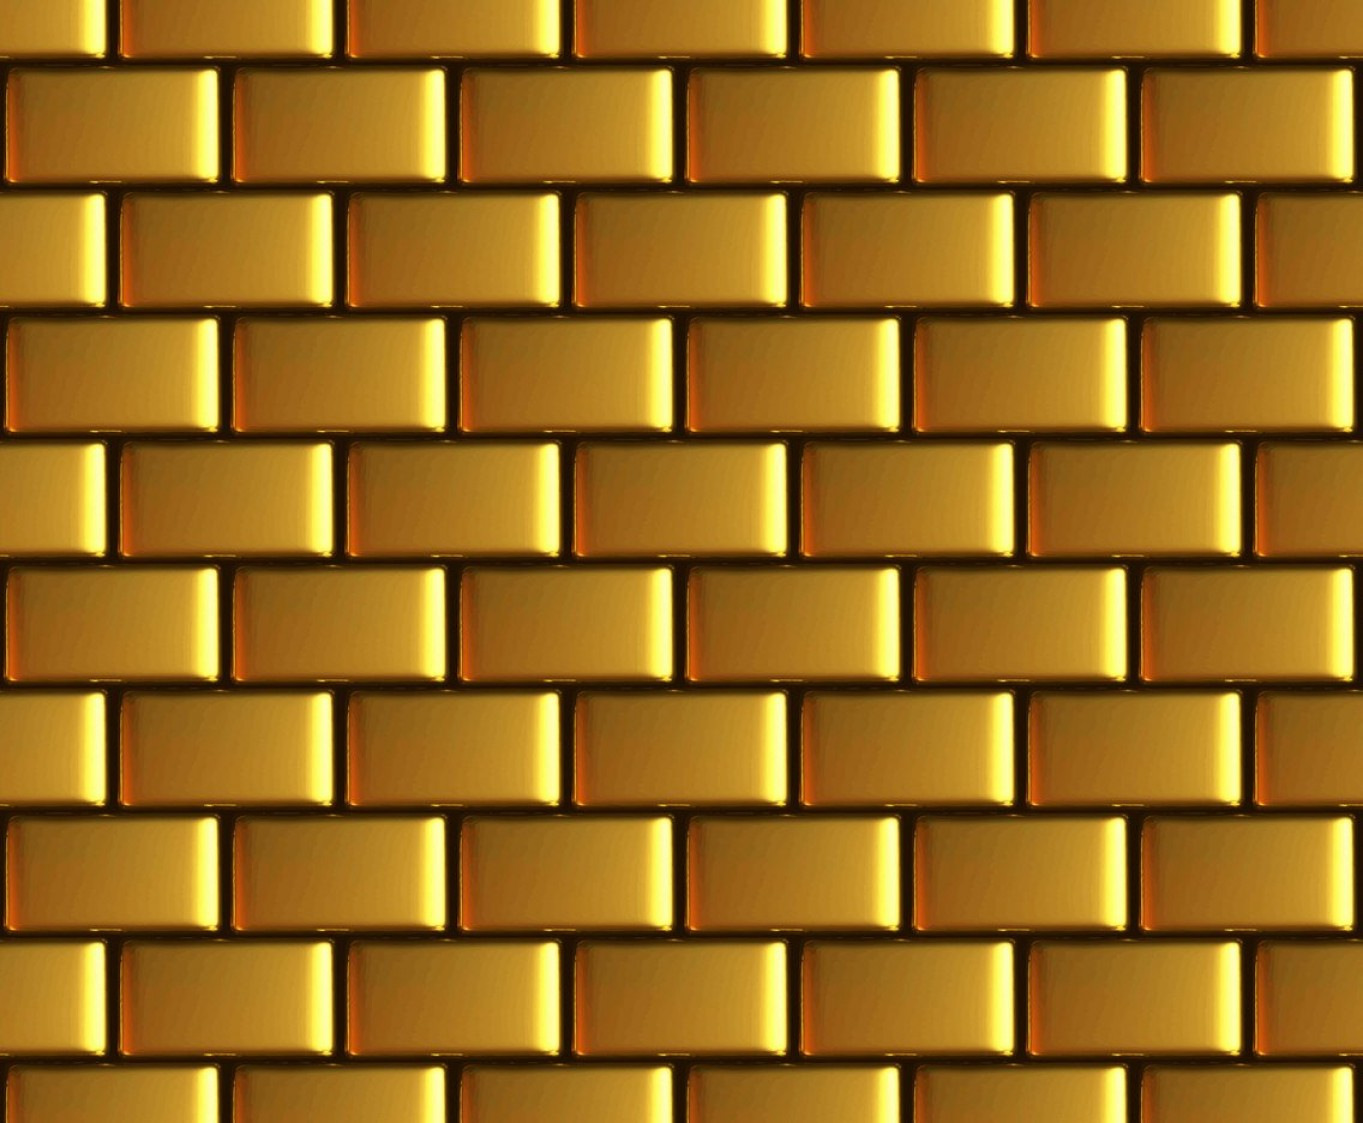 Wall Background Vector: Golden Brick Wall Vector Background